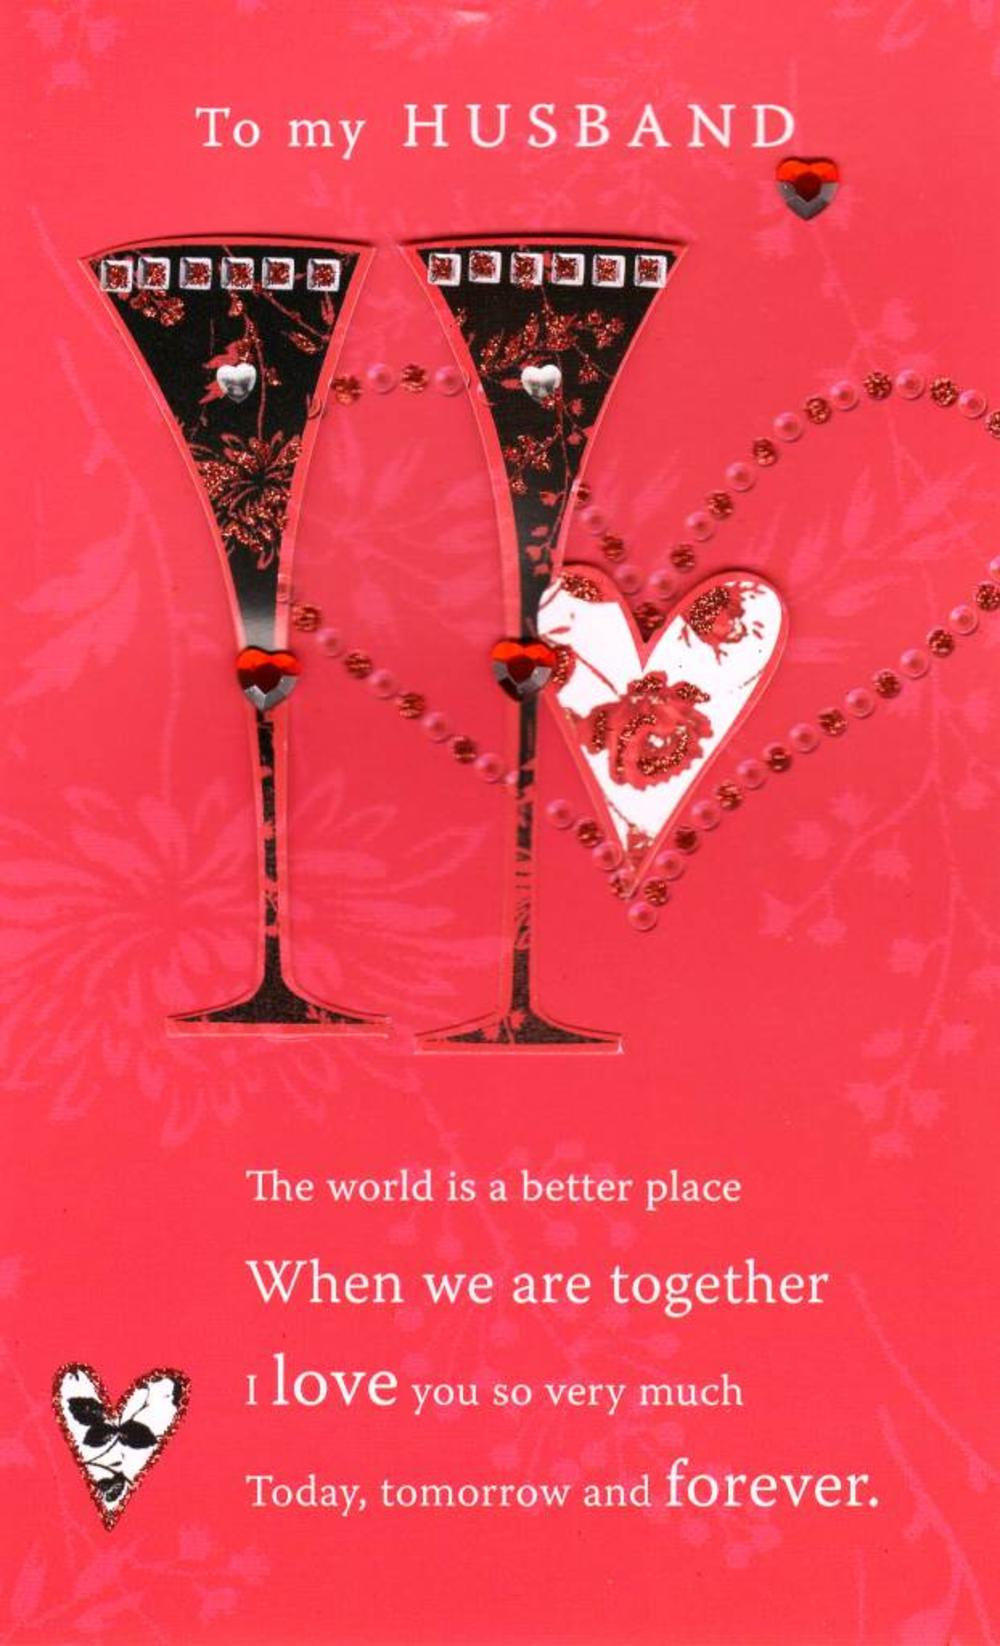 To My Husband Lovely Valentine's Day Card